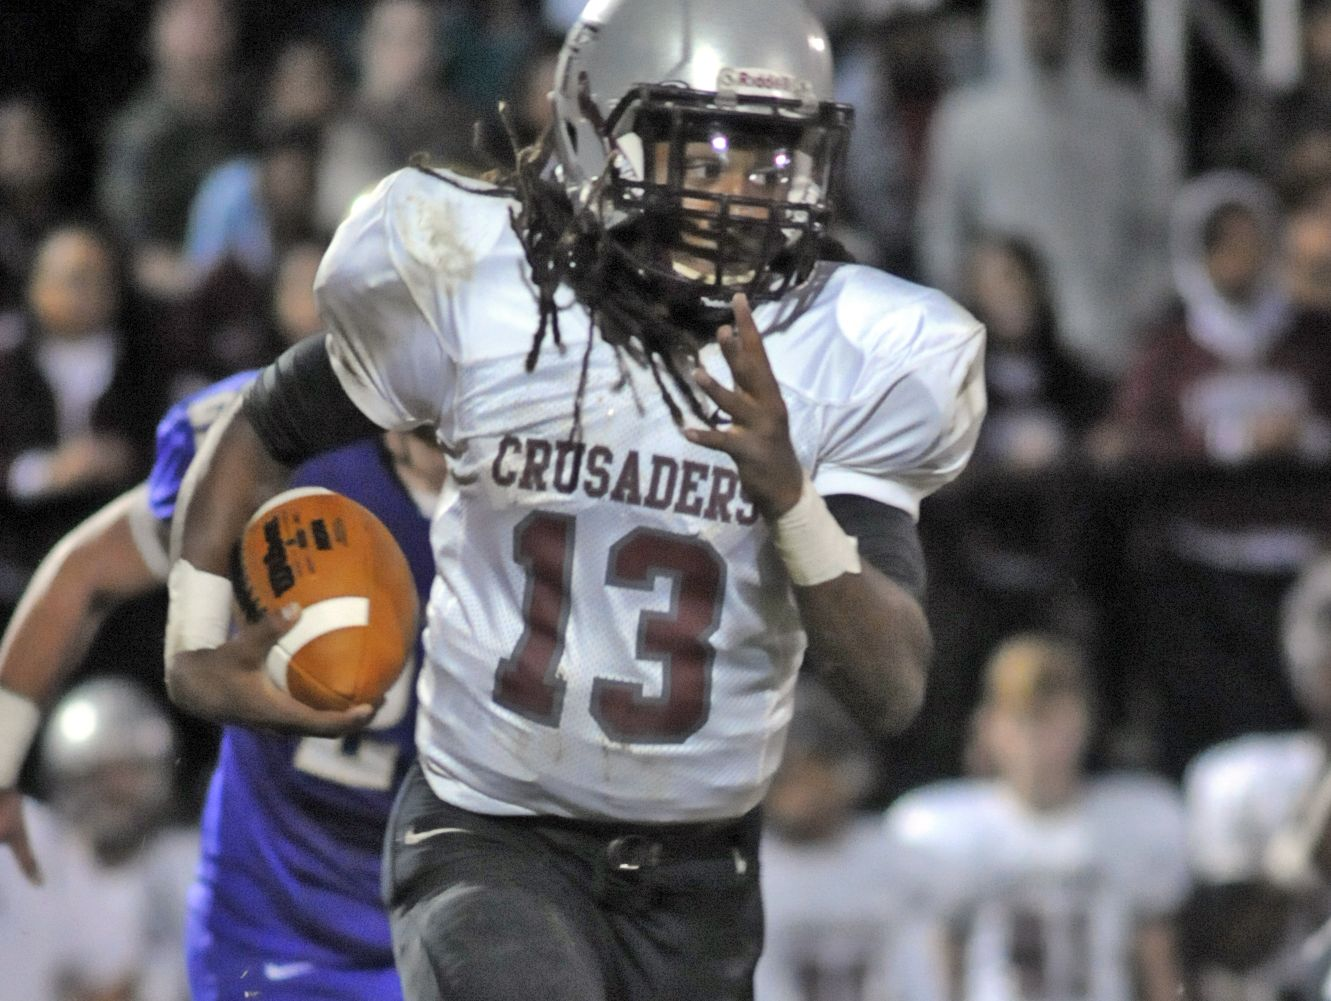 Liberty's Corey Newble (13) runs the ball against CPA during Liberty Magnet at CPA during the 3A semifinal playoff game on Friday, Nov. 27, 2015 in Nashville, Tenn.